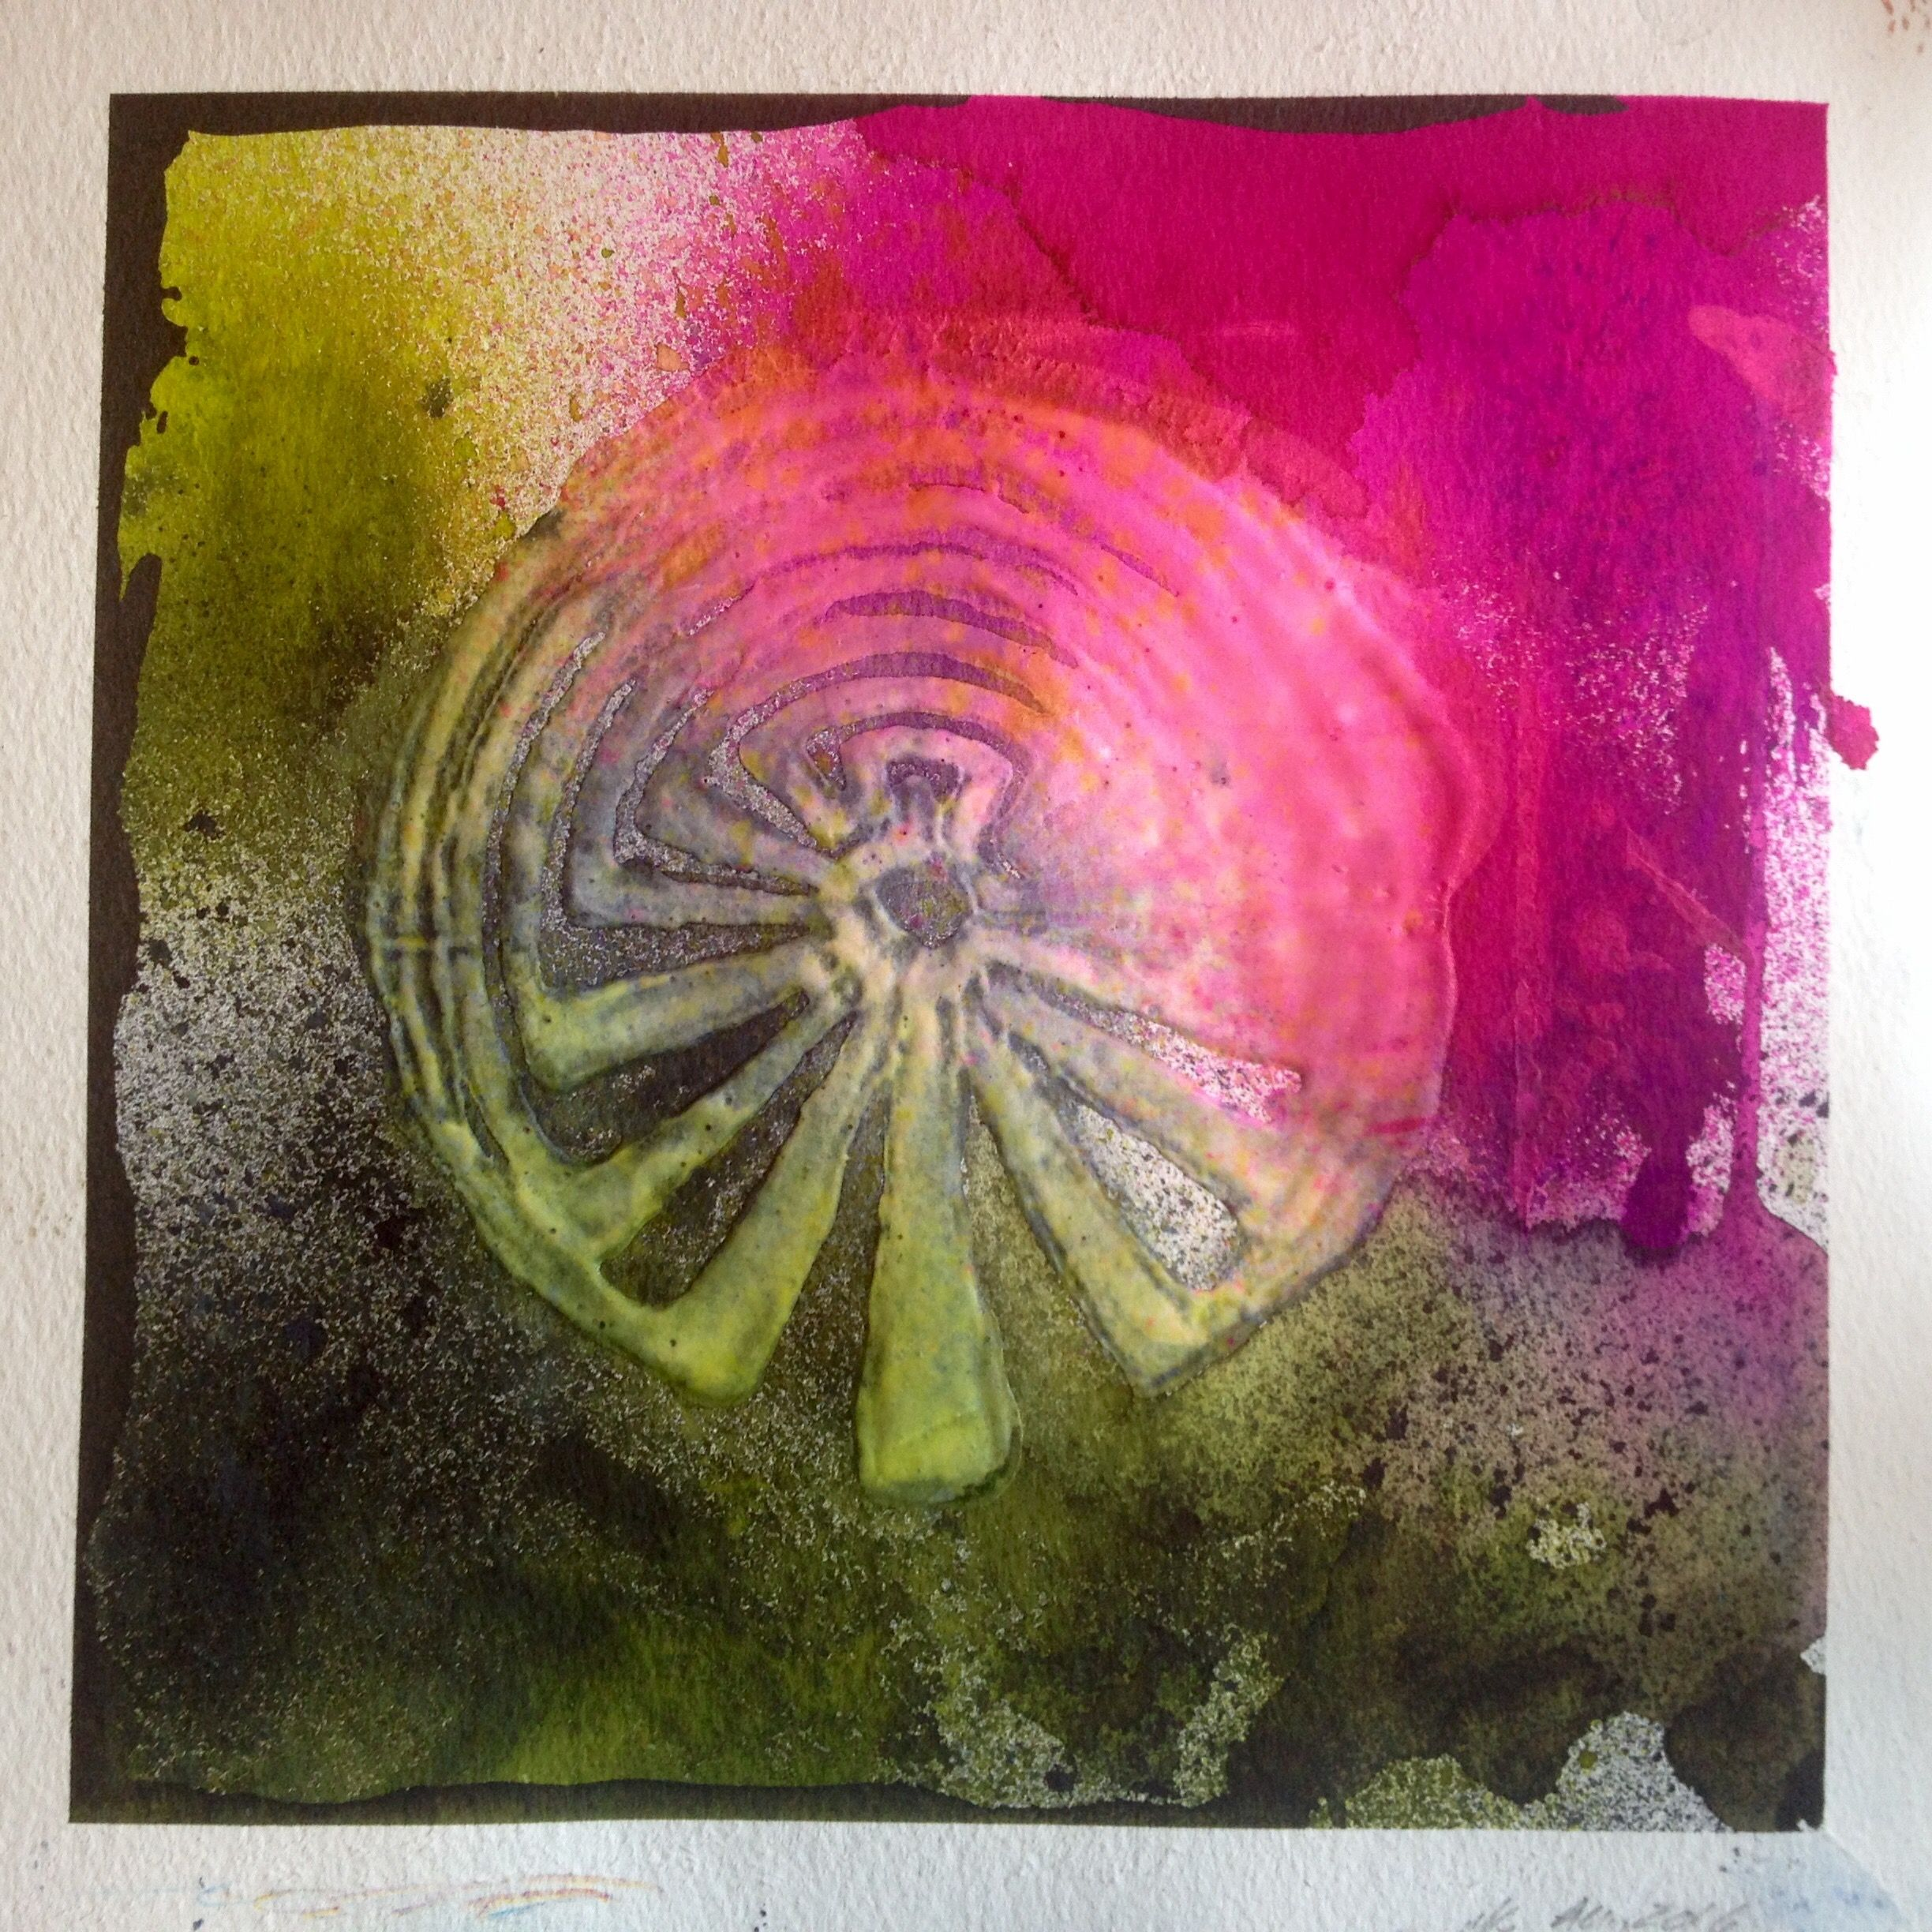 Labyrinth Drawing With Artistcellar Stencil Clear Gesso On 300lb